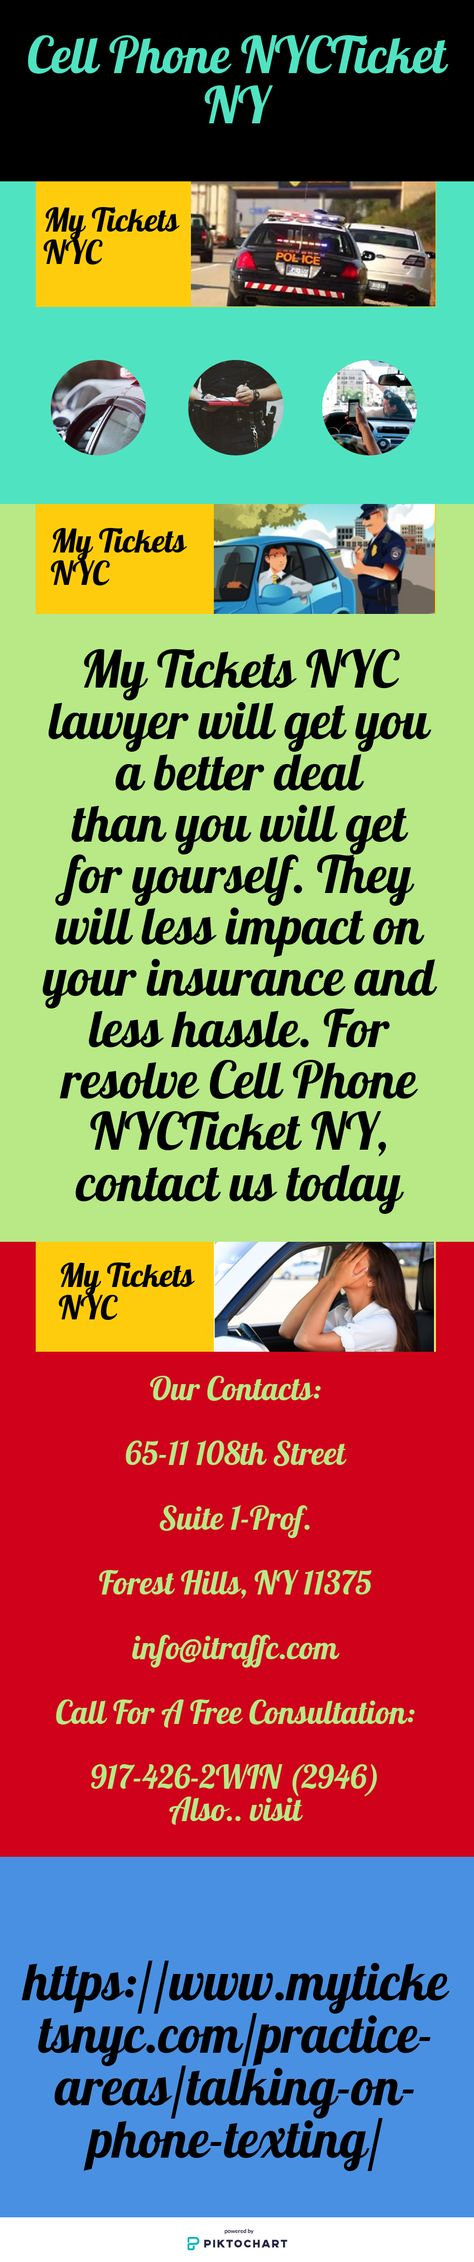 Traffic Ticket Nyc >> Pin By Myticketsnyc On Cell Phone Nyc Ticket Ny Driving